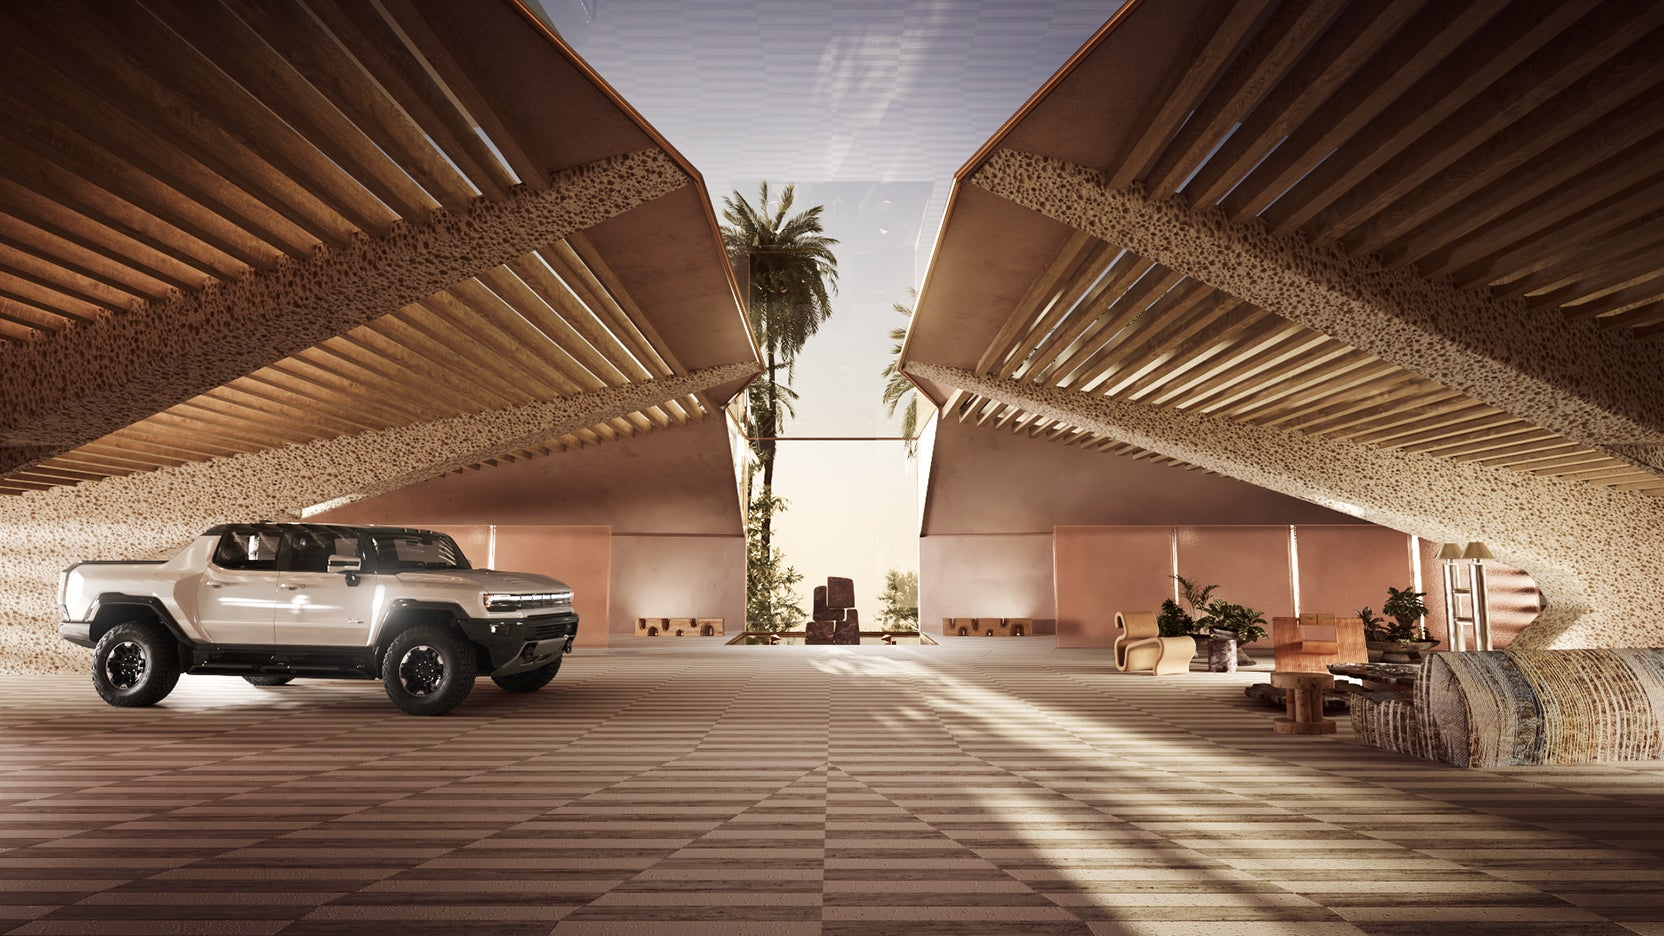 Garages of the Future Won't Be Eyesores Anymore